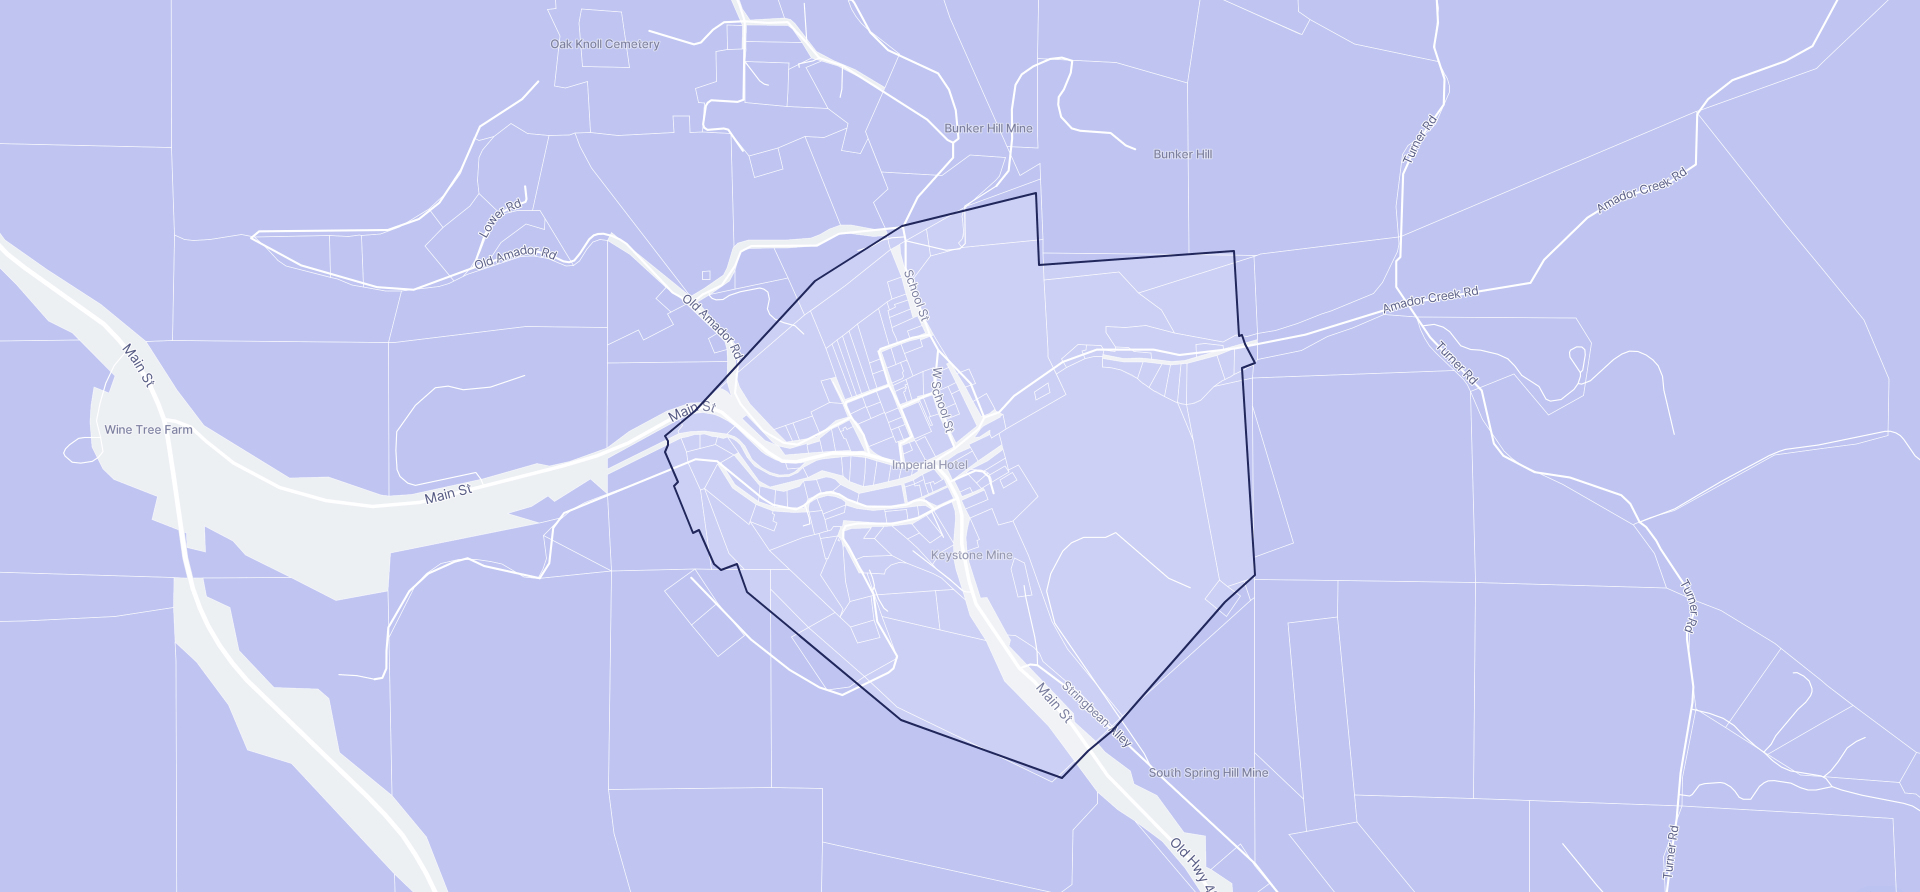 Image of Amador City boundaries on a map.